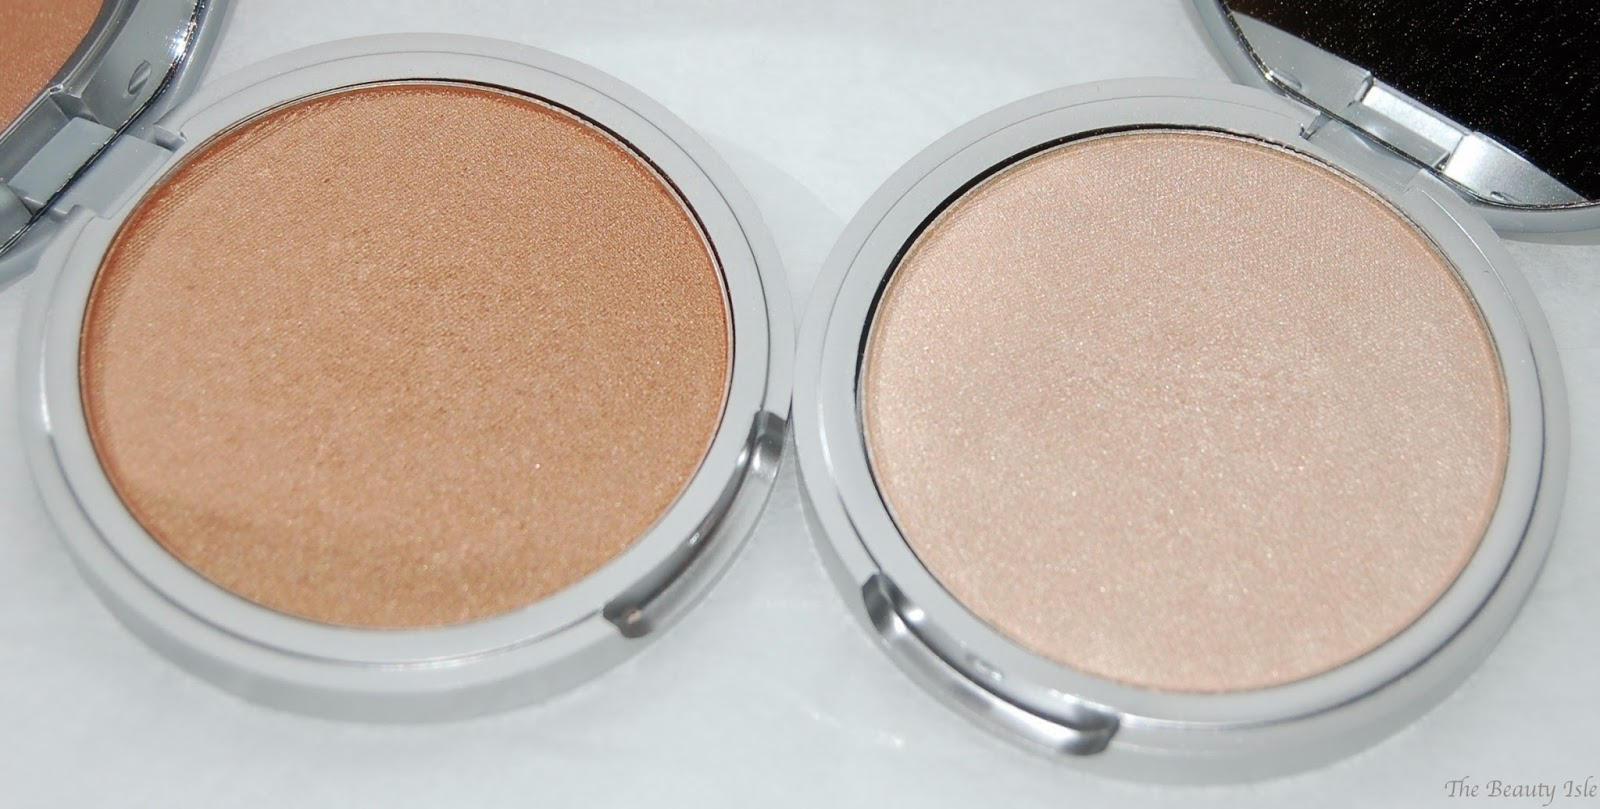 The Balm Betty-Lou Manizer and Mary-Lou Manizer